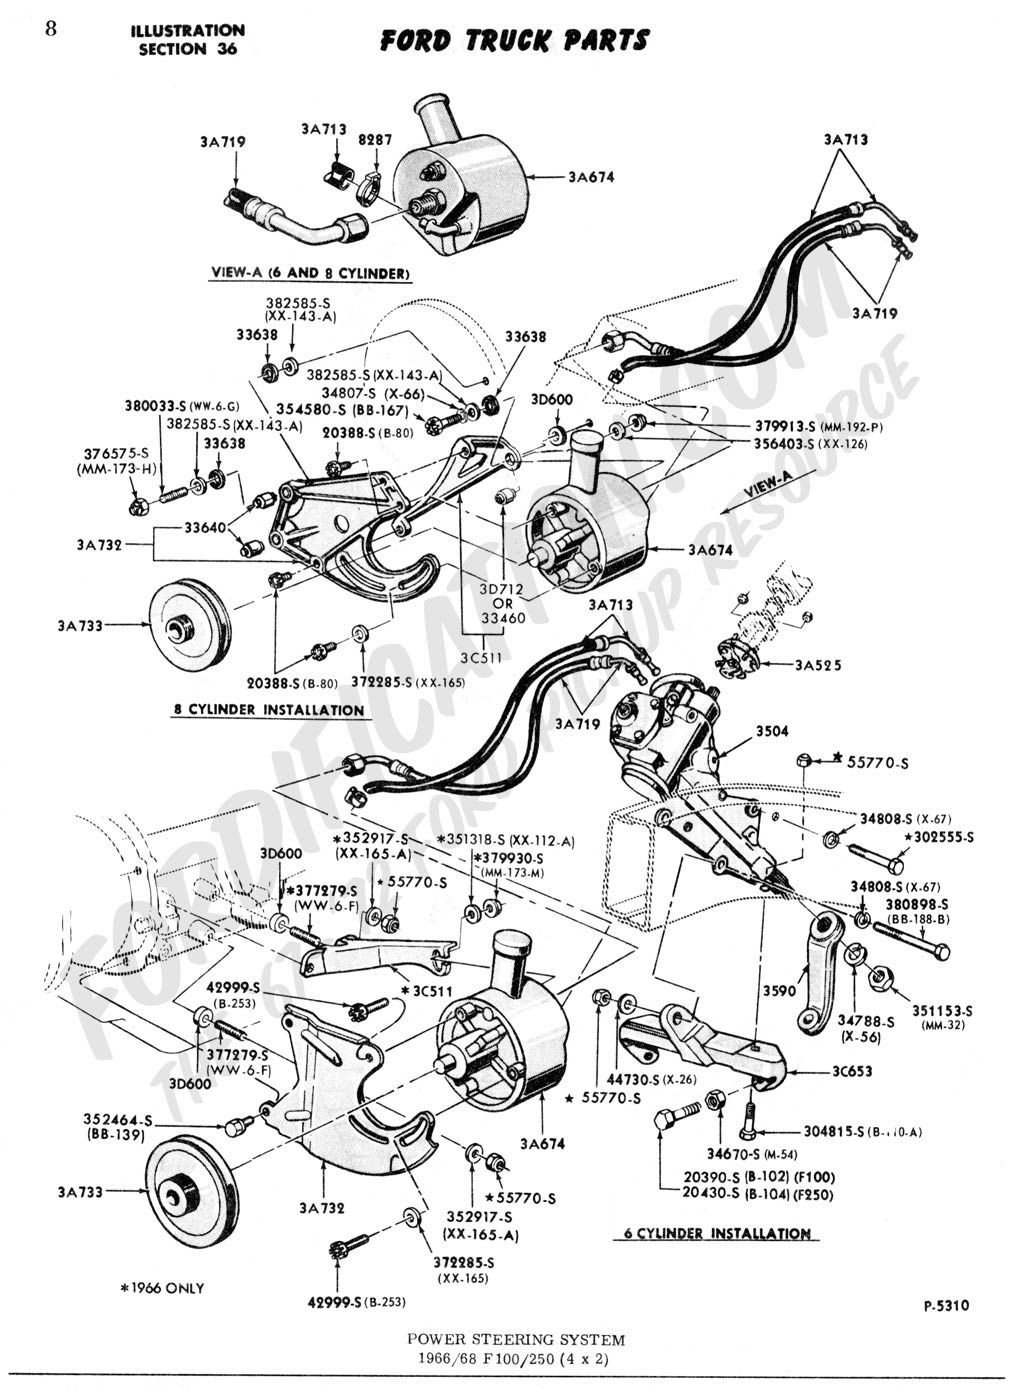 medium resolution of 1977 ford truck steering diagram power steering system